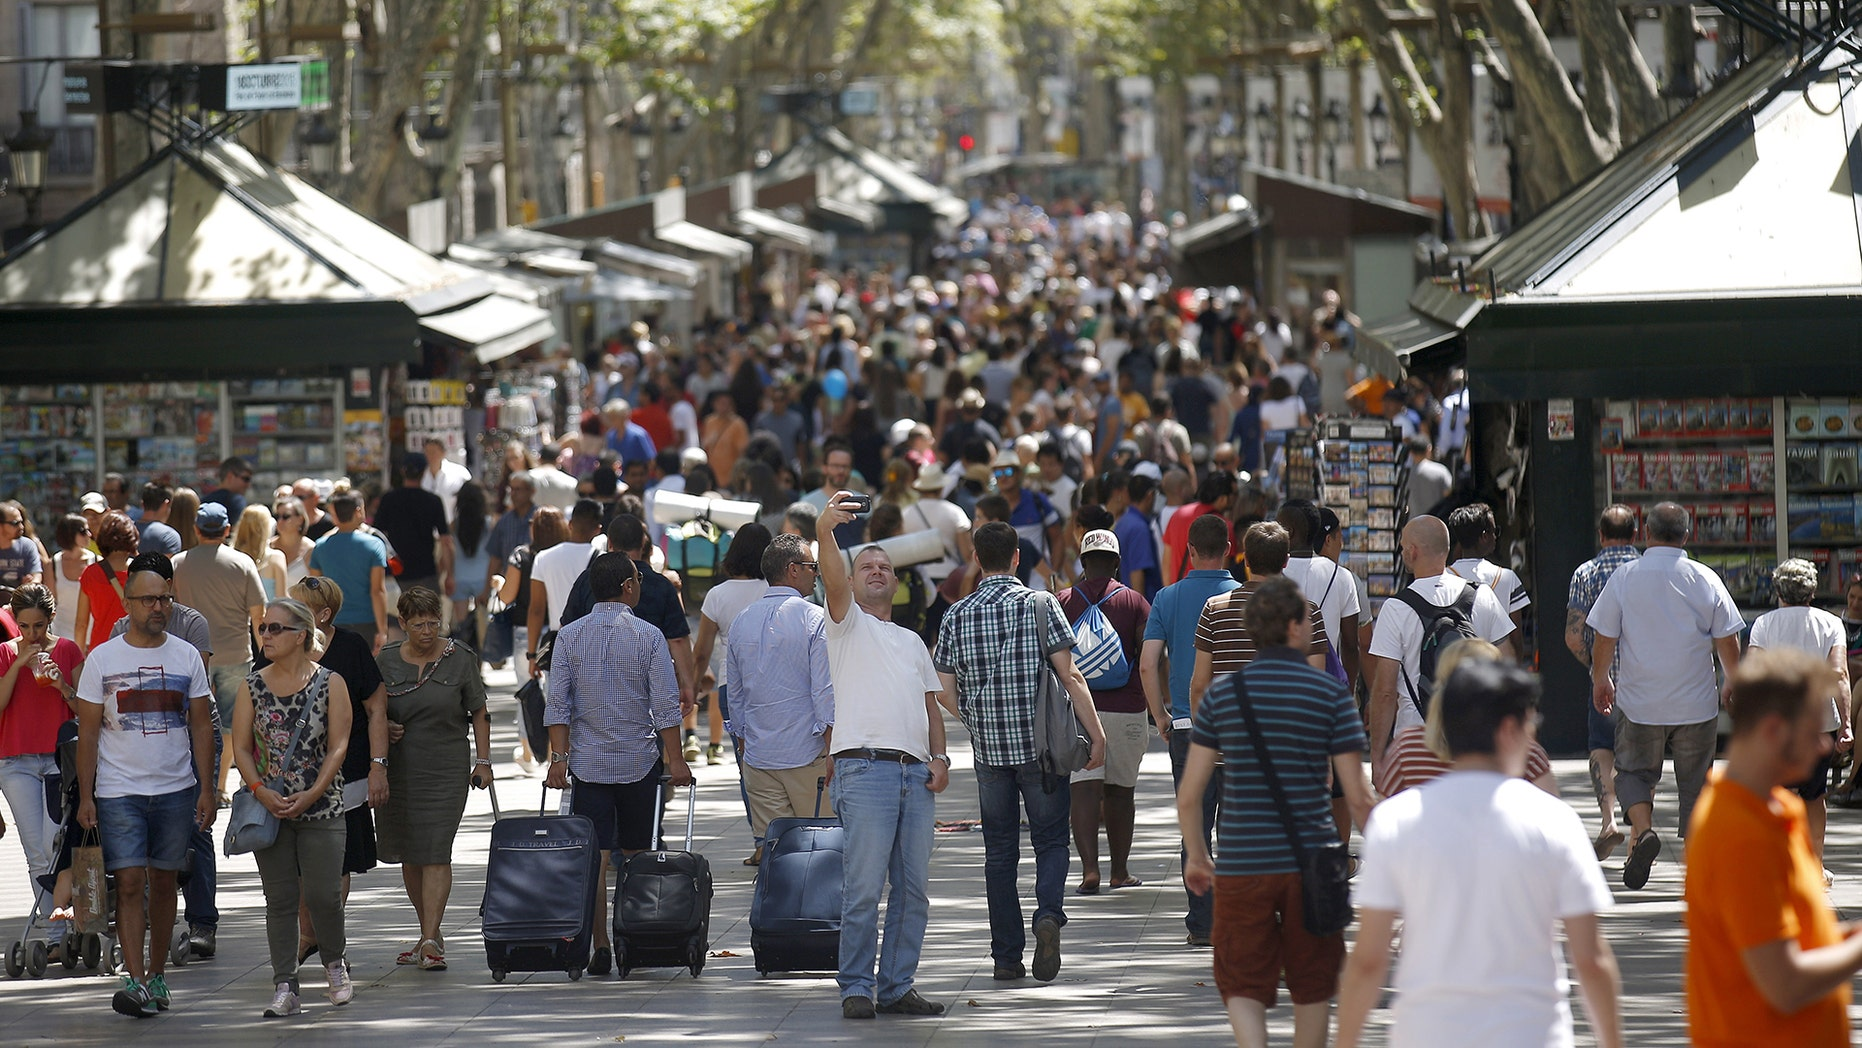 A man takes a selfie at Las Ramblas in Barcelona, Spain, August 16, 2015. Barcelona's new mayor is picking a fight with home rental websites as she tries to crack down on uncontrolled tourism that she fears could drive out poor residents and spoil the Catalan capital's charm. Picture taken on August 16, 2015. REUTERS/Albert Gea - RTX1PQRT